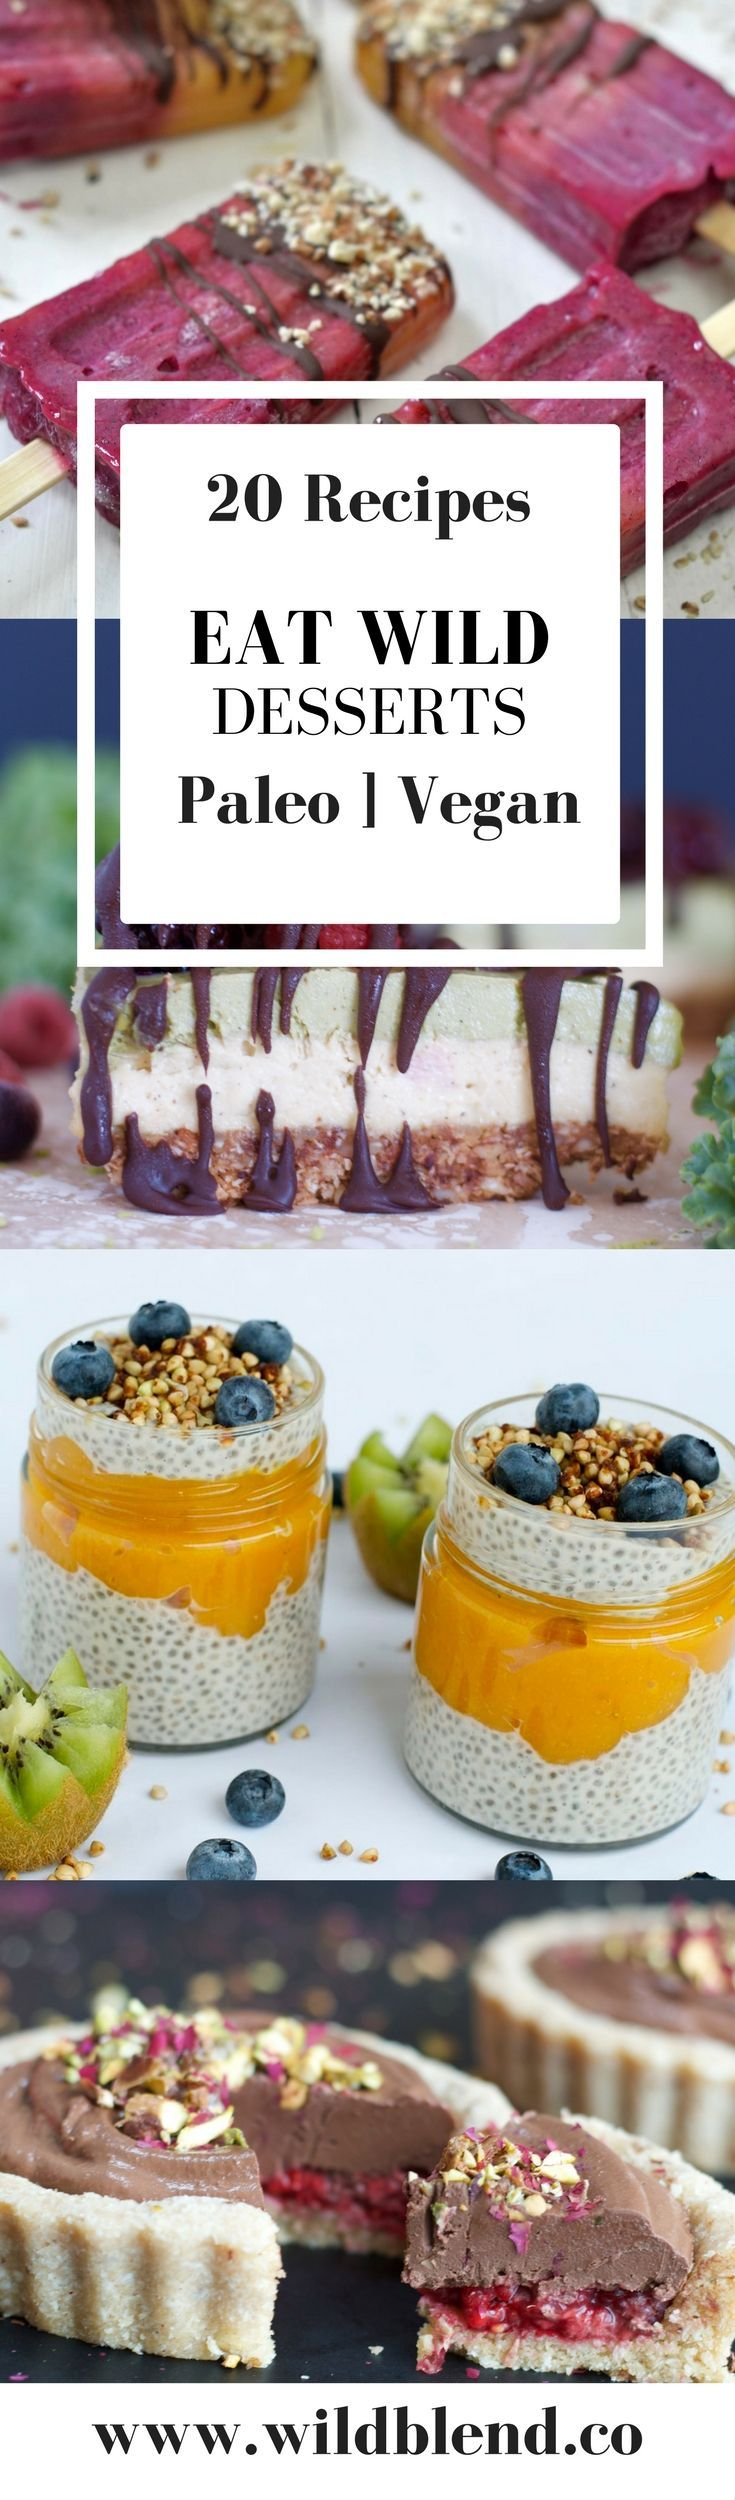 These 20 healthy and clean recipes are Paleo & Vegan friendly and will satisfy your sweet tooth without compromising your health goals. Grab the FREE eBook here: http://www.wildblend.co/freerecipes #wildblend #vegan #paleo